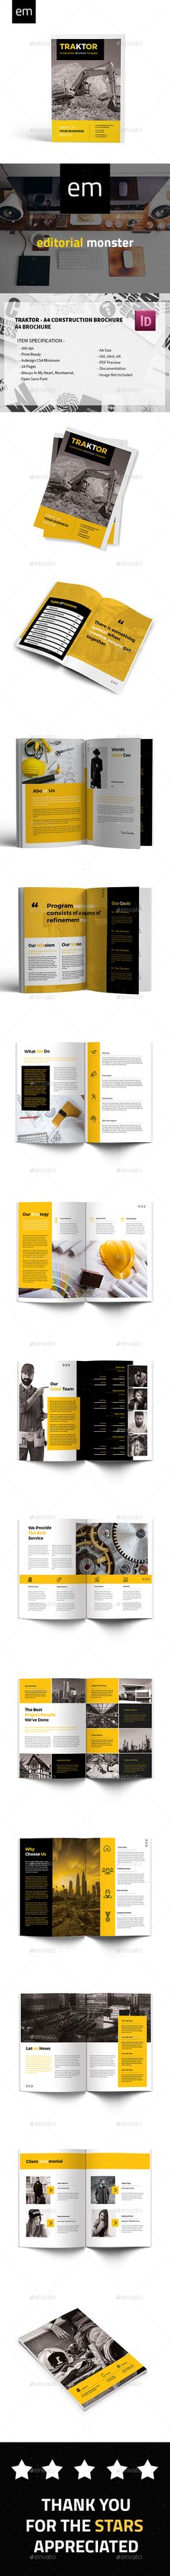 Traktor  A4 Construction Brochure — InDesign INDD #company #abstract • Available here → https://graphicriver.net/item/traktor-a4-construction-brochure/20427679?ref=pxcr